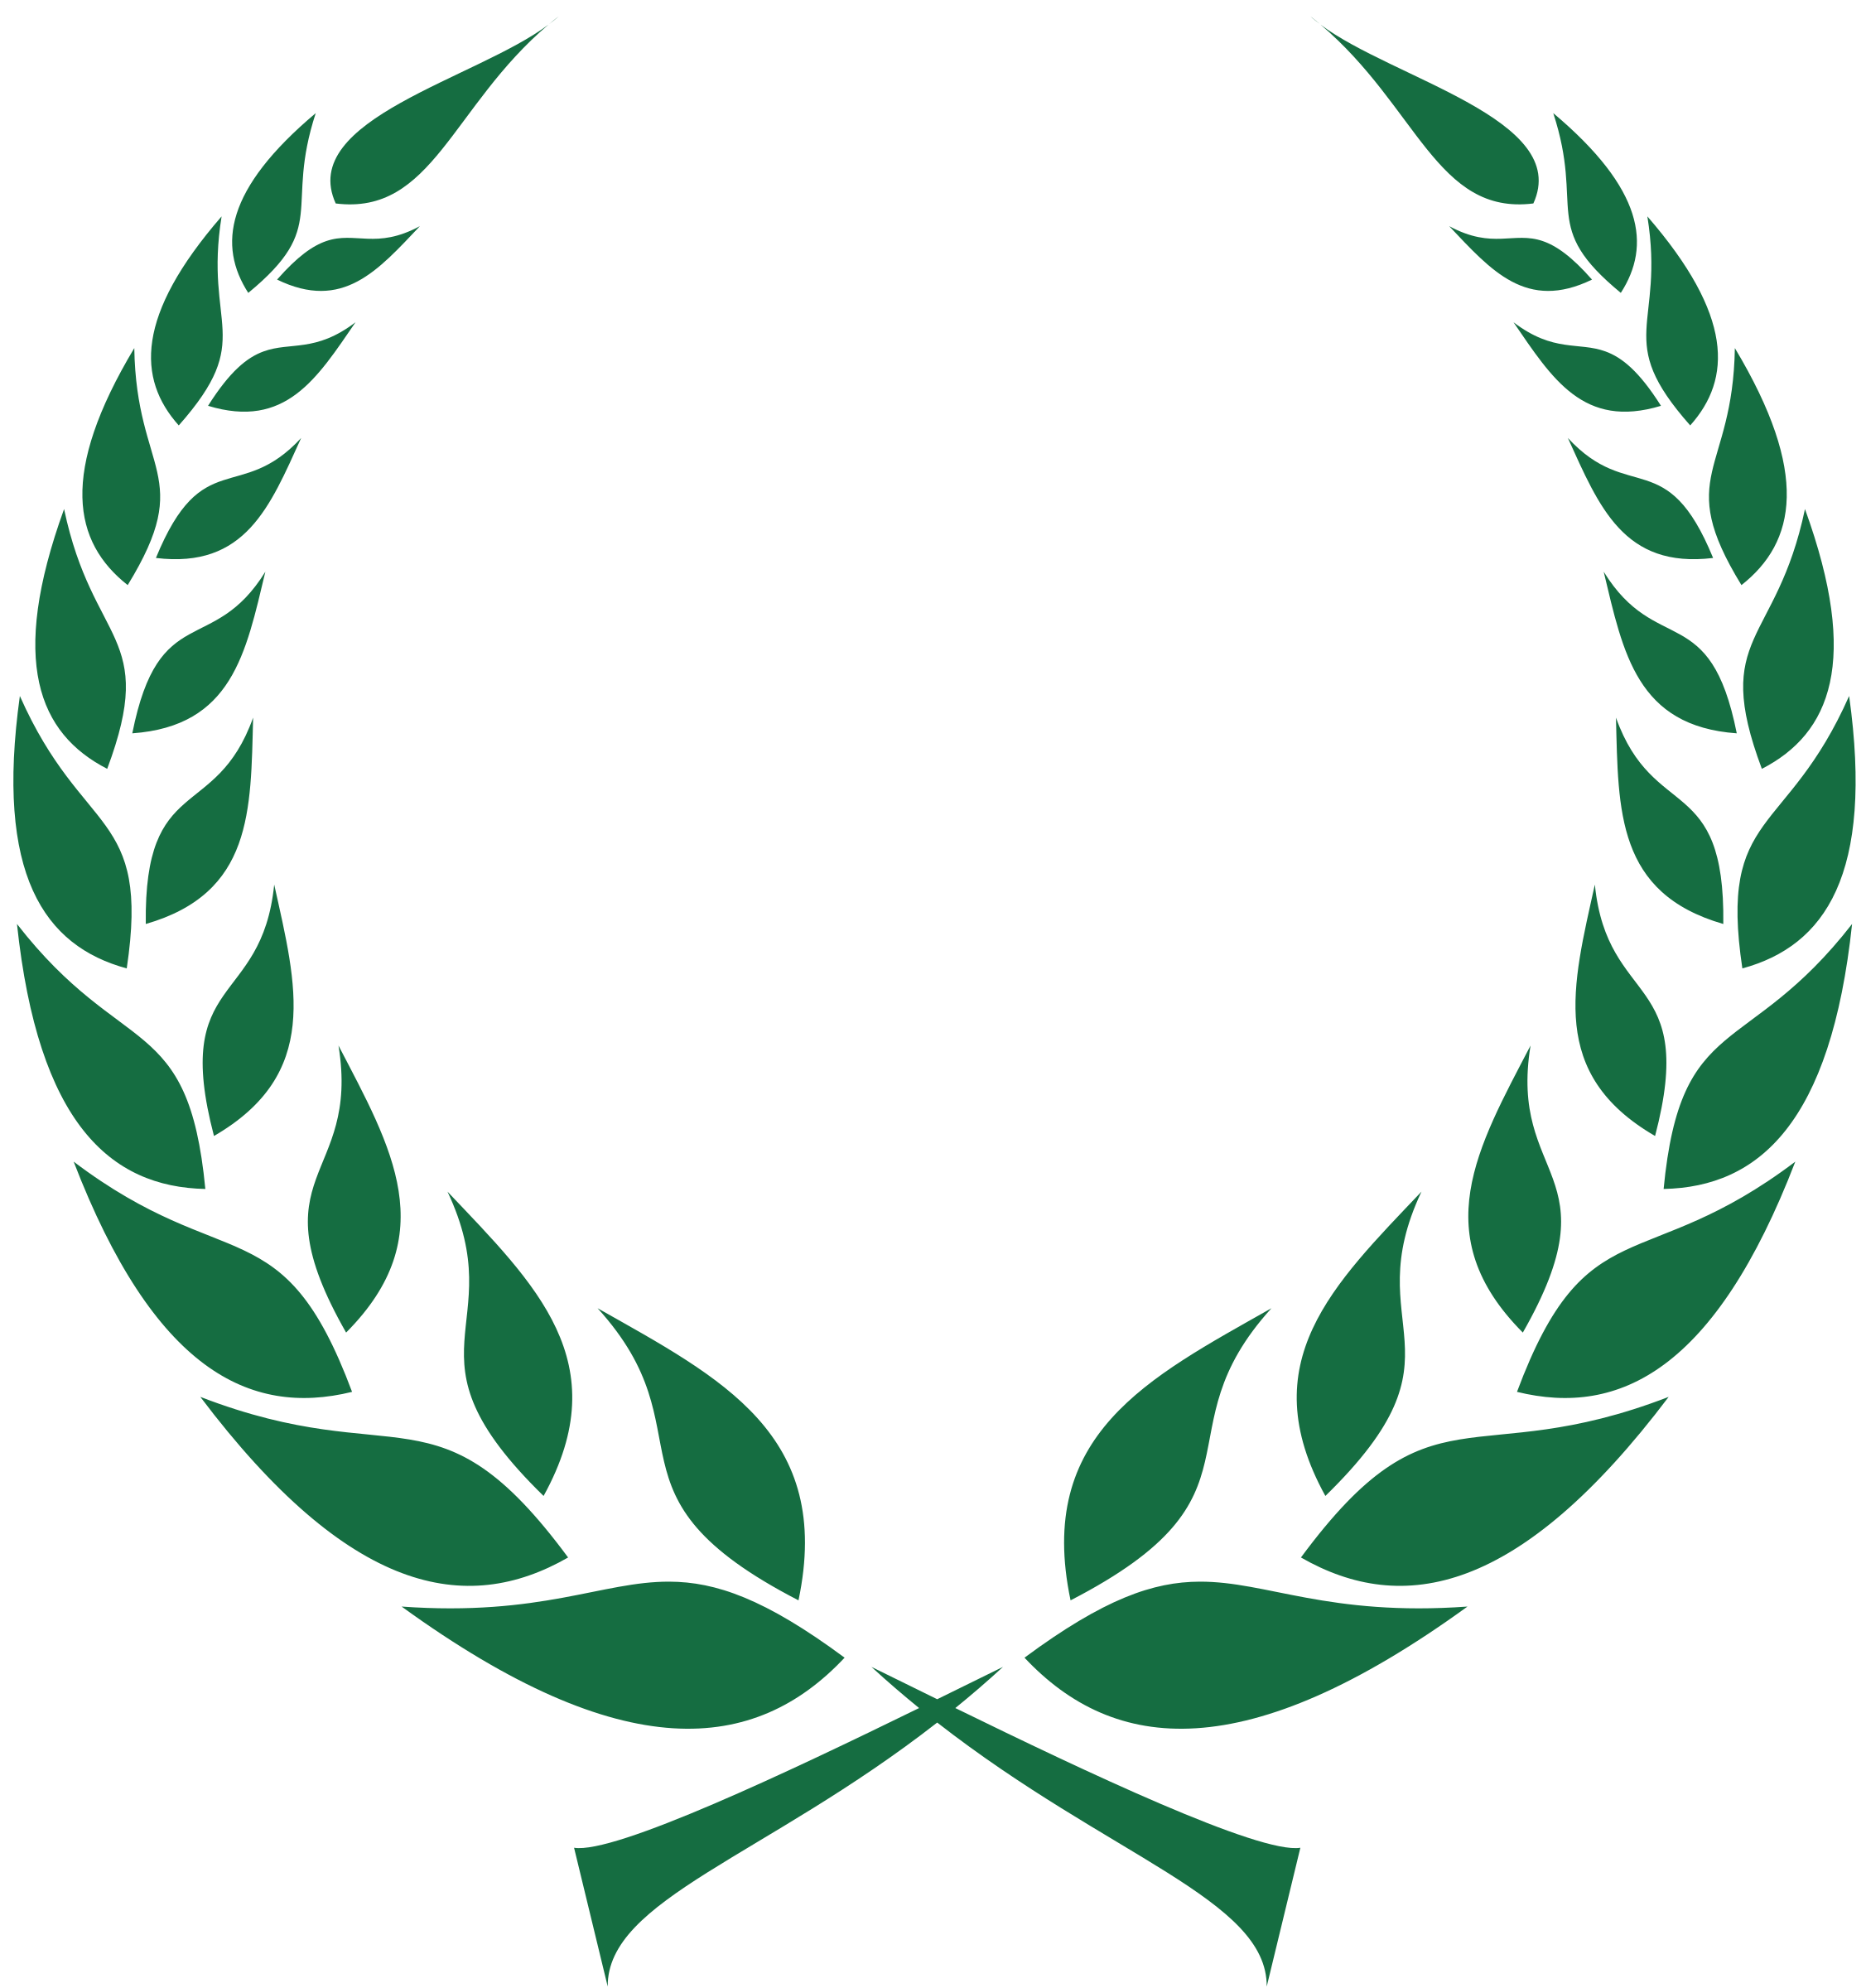 jpg royalty free library Laurel clipart olympic. Olive wreath big image.